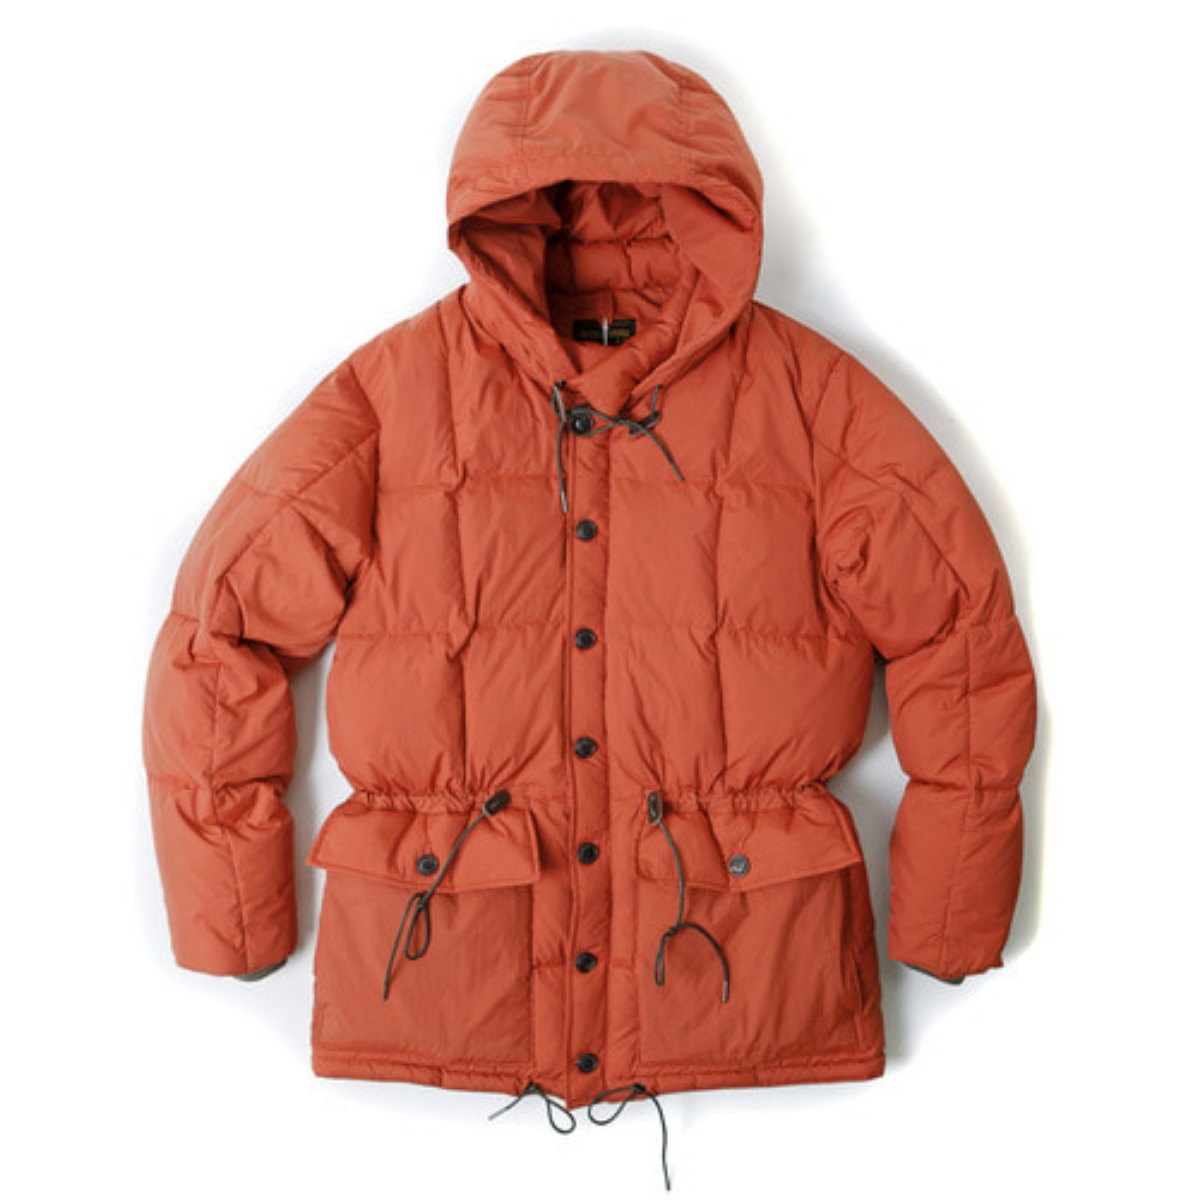 [OUTSTANDING] KARAKORAM GOOSE DOWN PARKA 'RED BRICK'